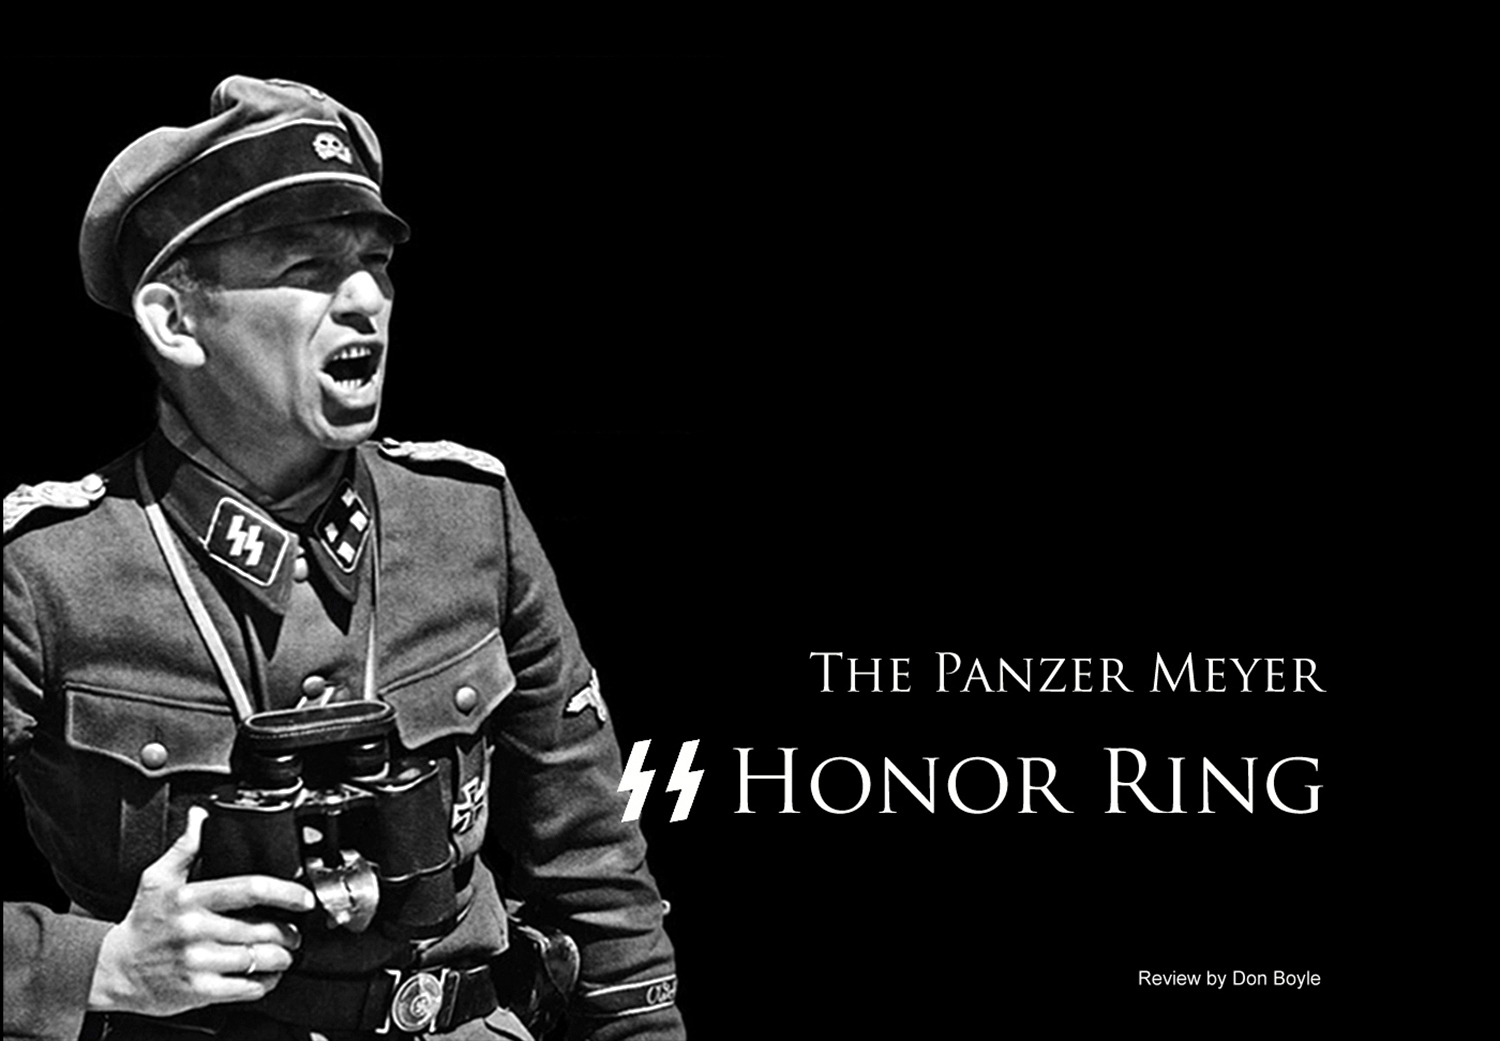 ss_honor_ring_panzer_meyer.jpg